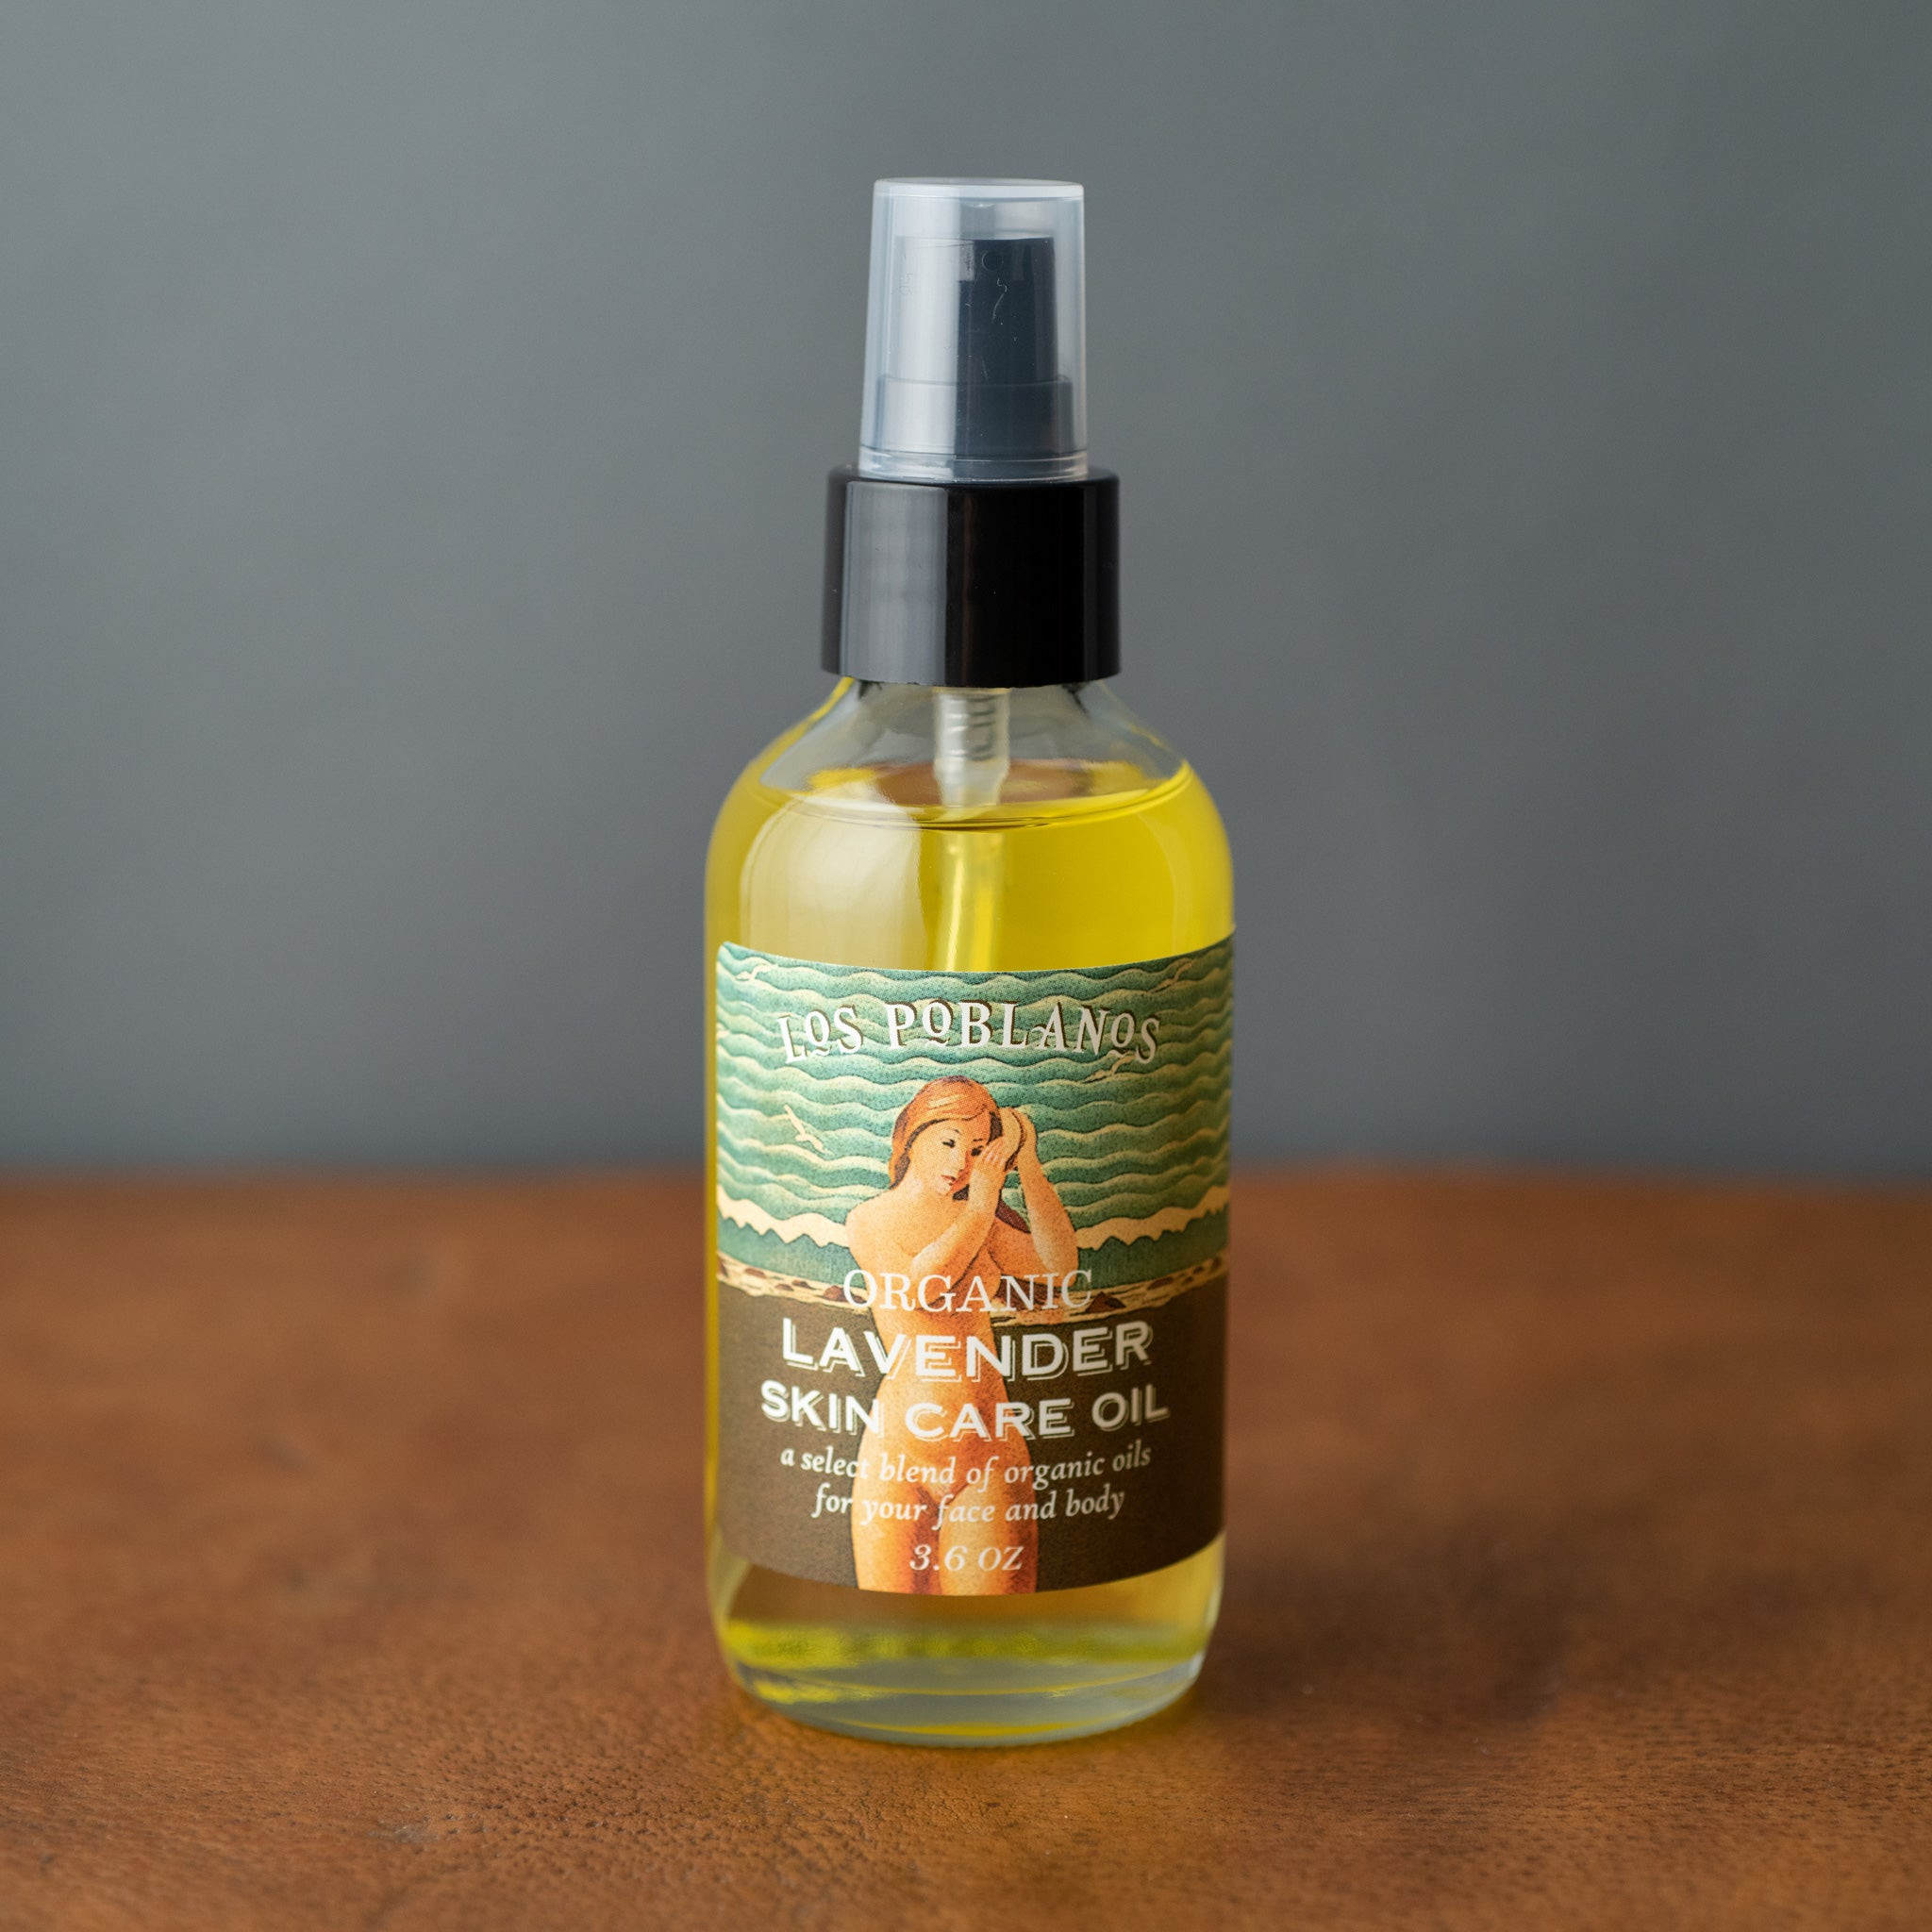 Lavender Skin Care Oil